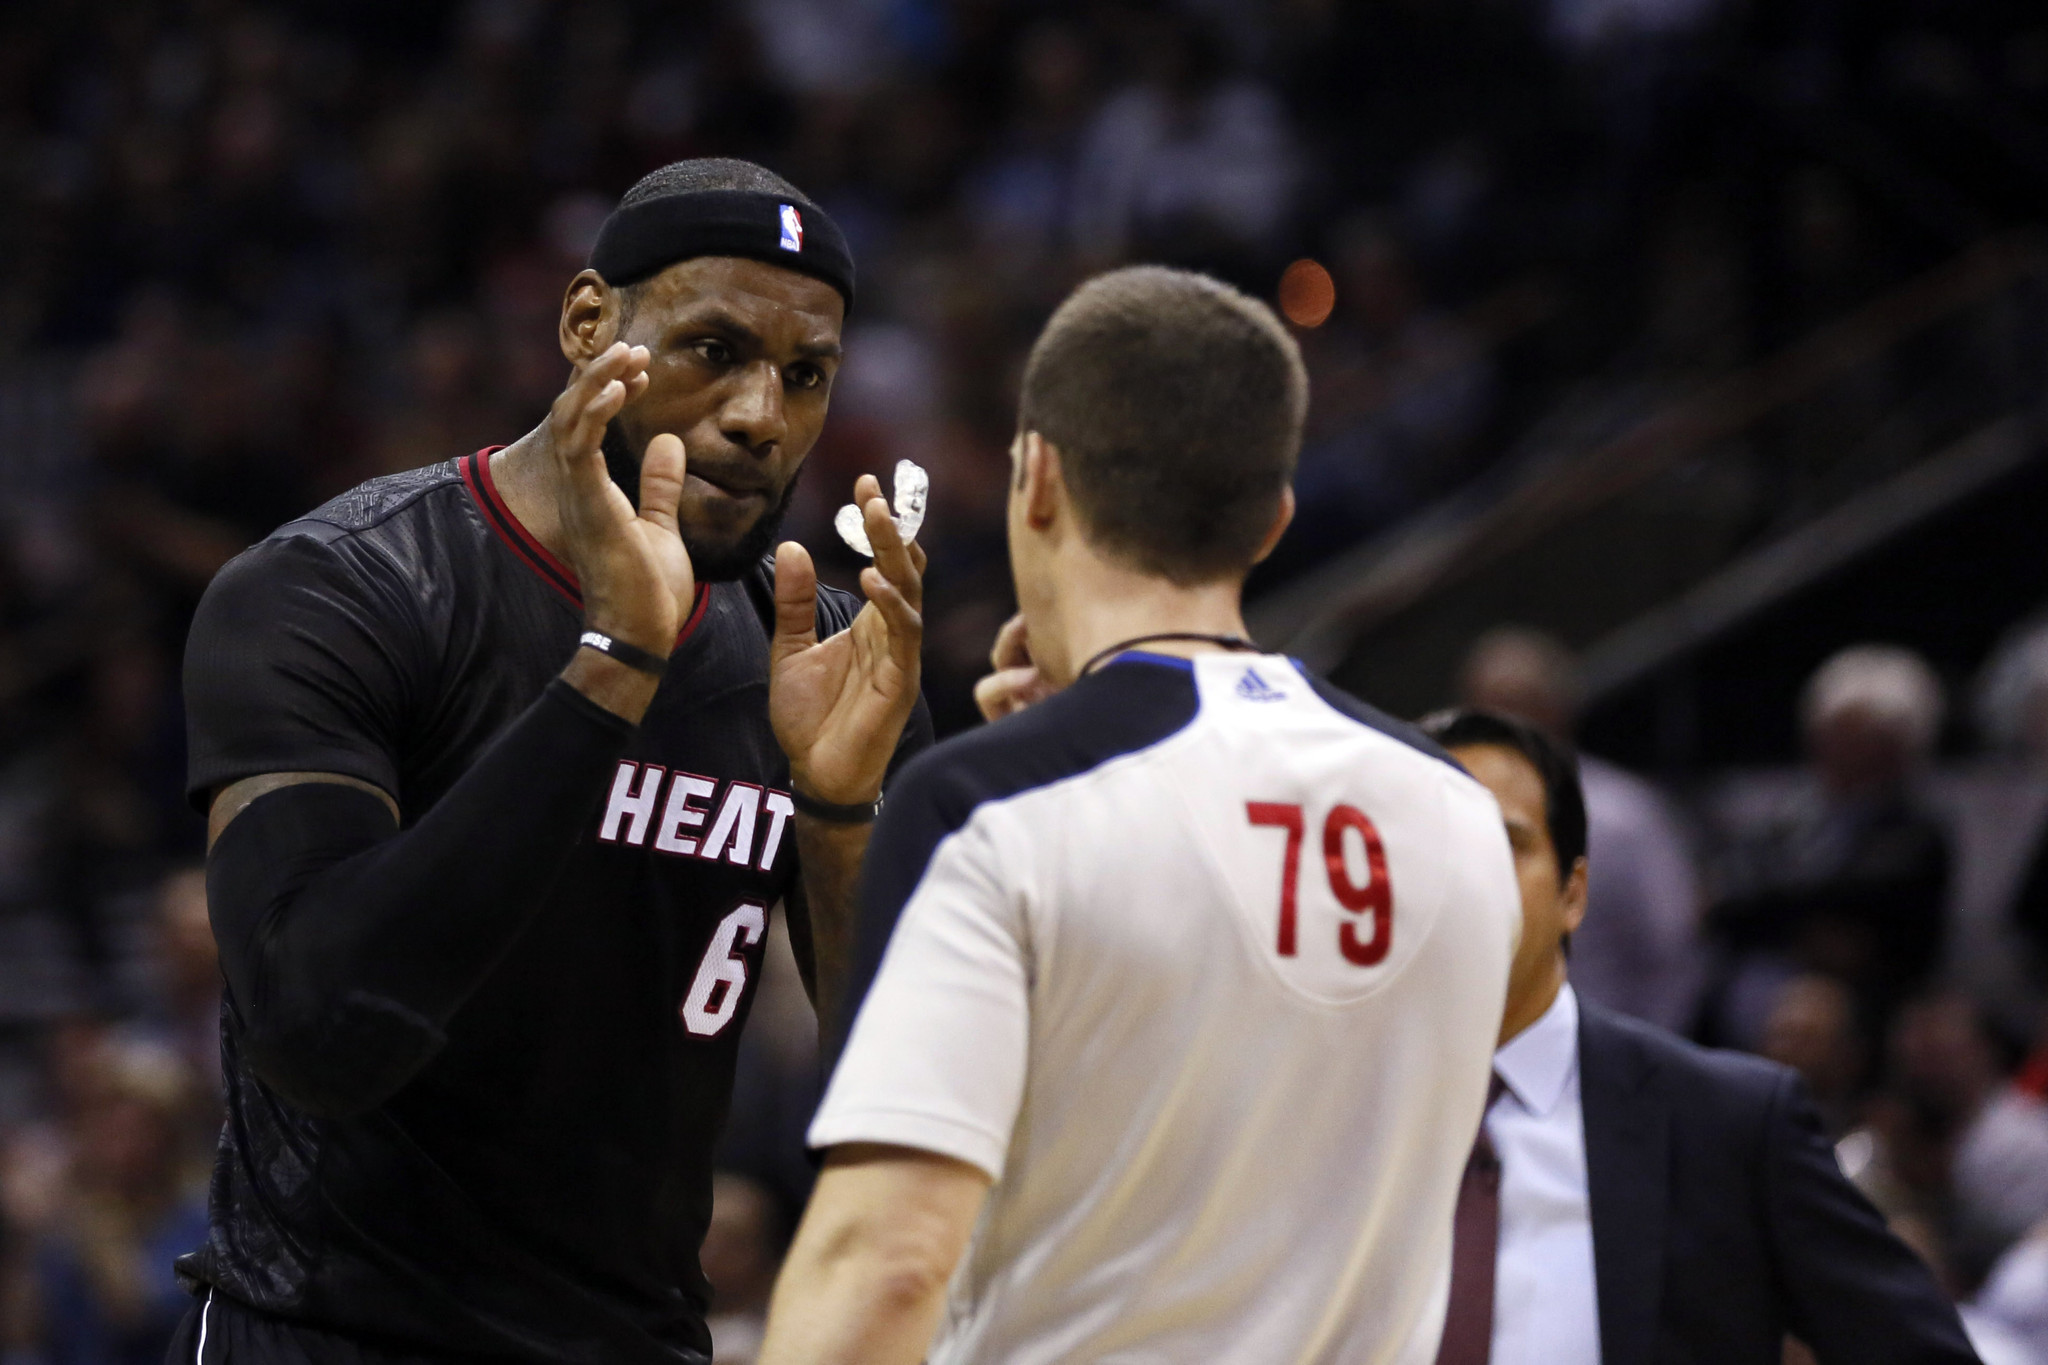 Lebron Complains About Sleeve Jerseys After Loss Sun Sentinel